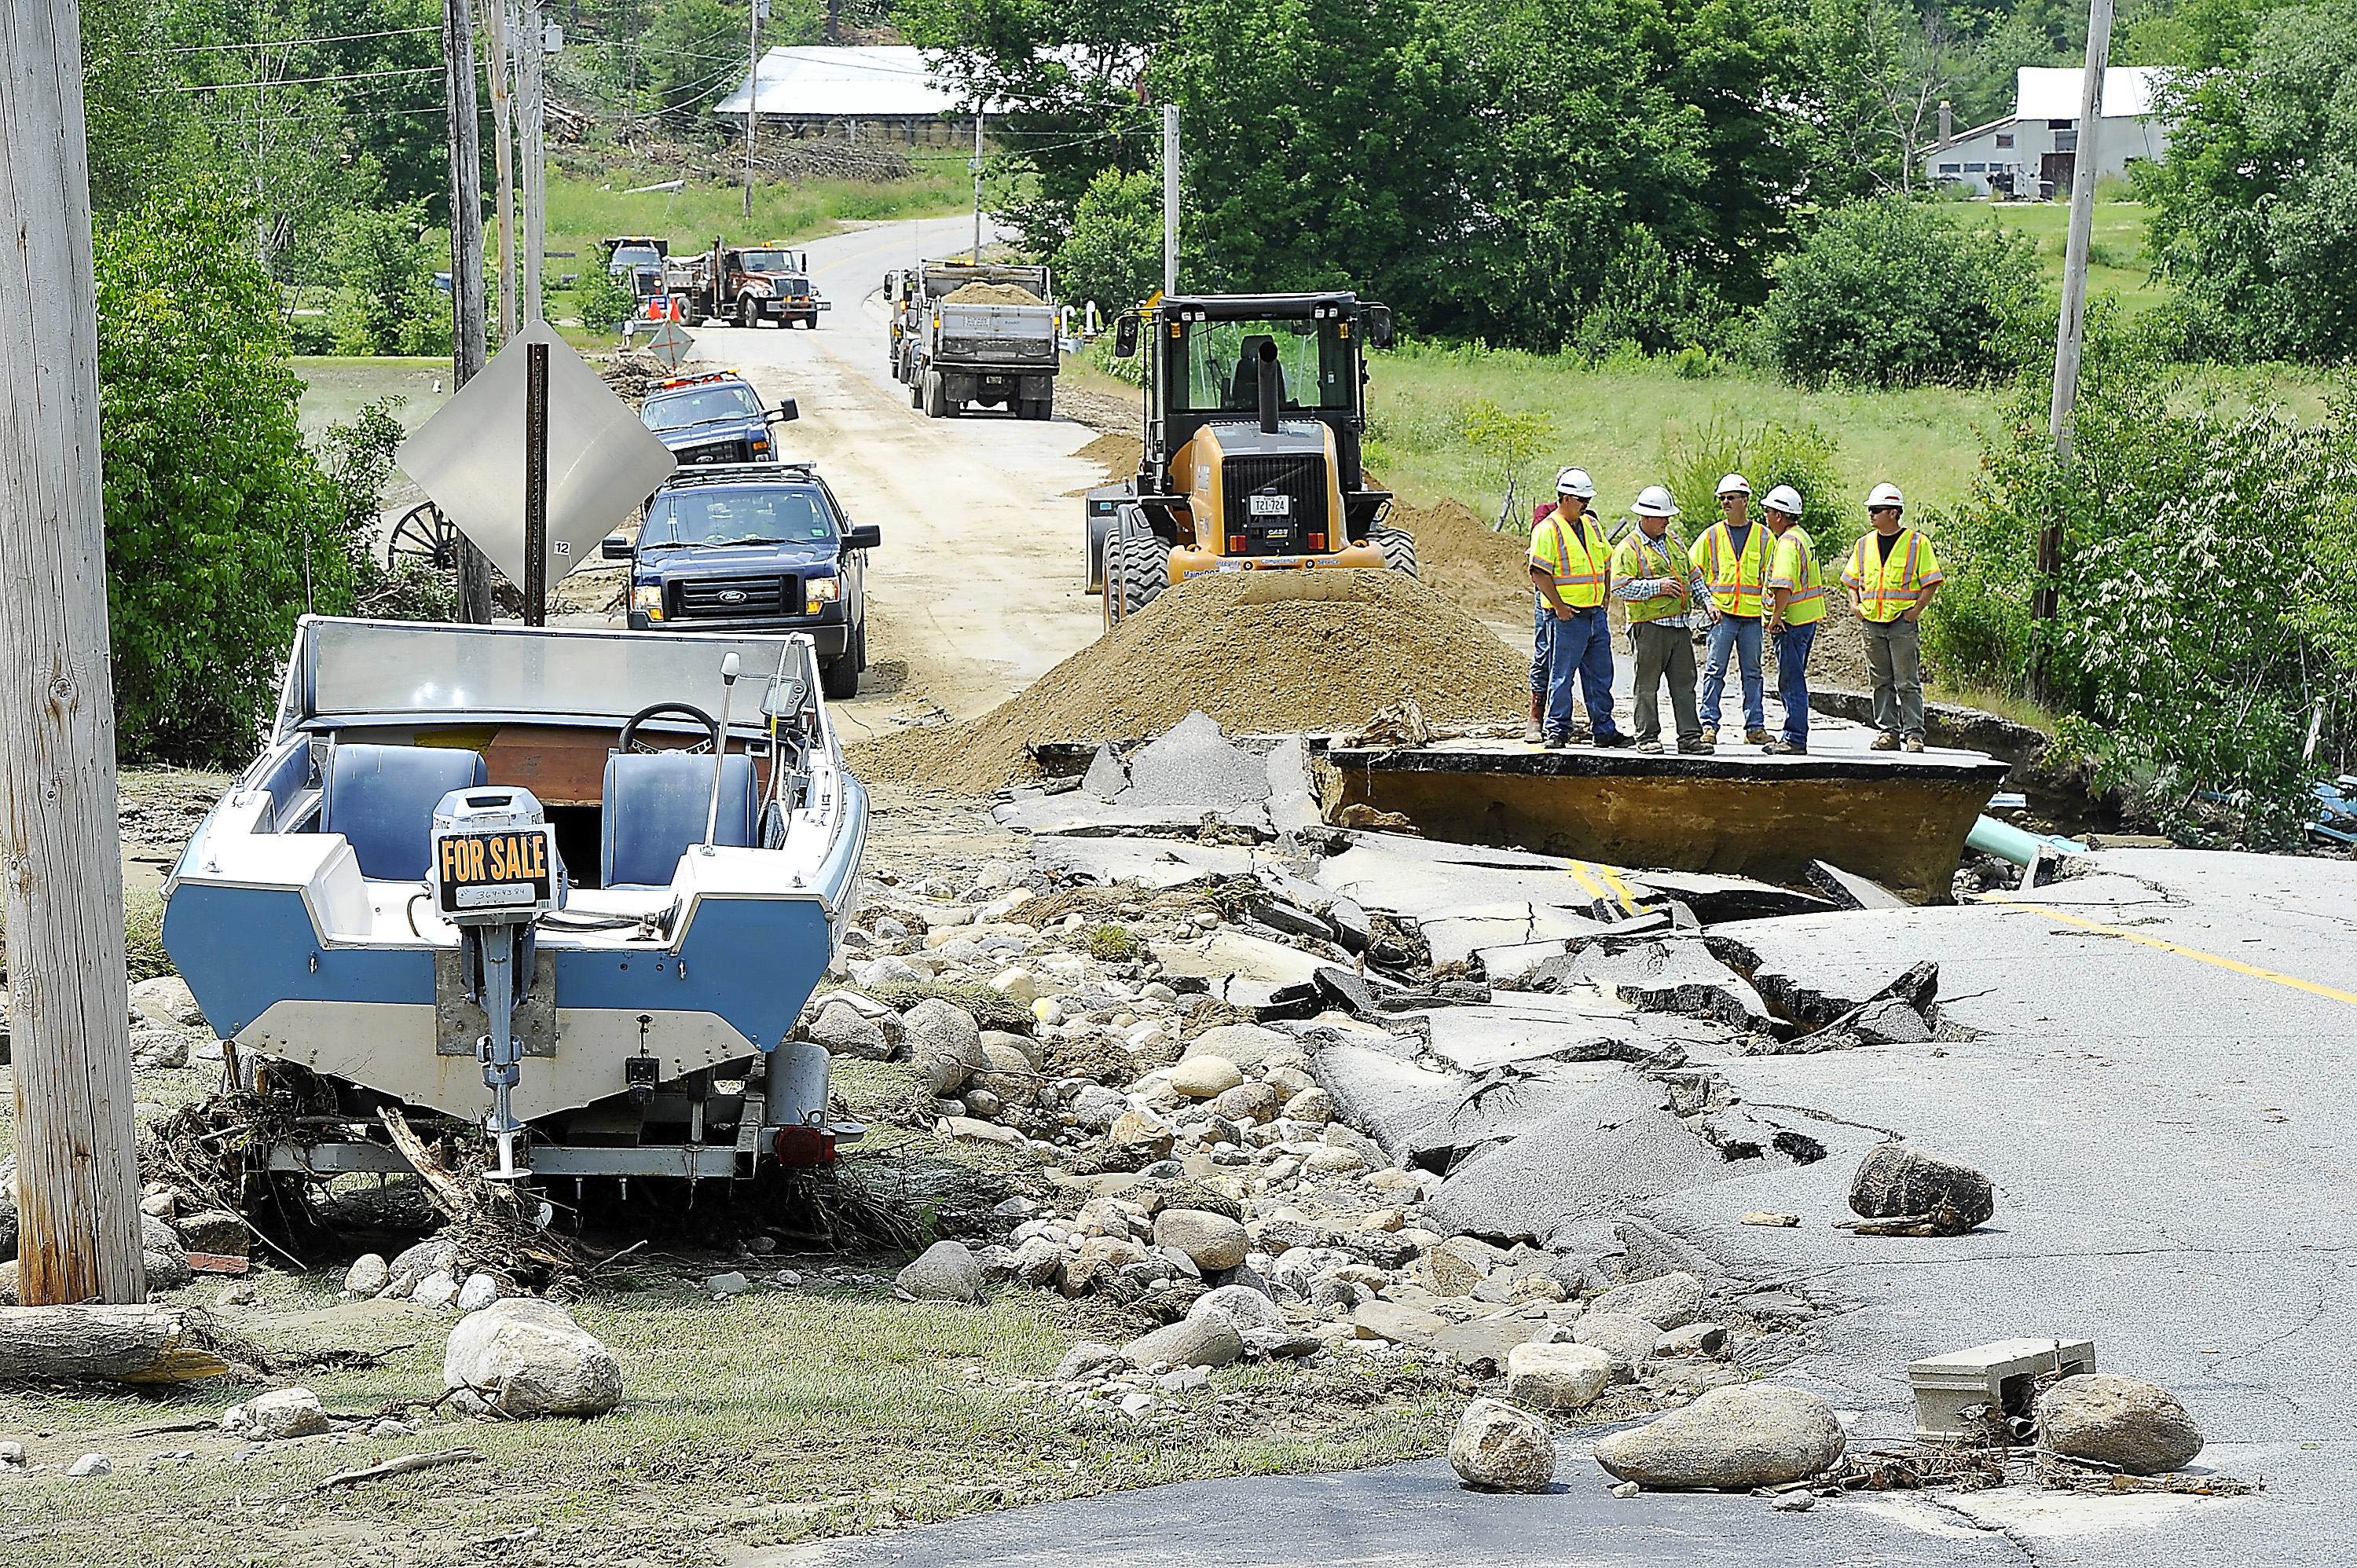 A boat for sale made it through the night of the heavy rains and winds in Rumford. A crew from the Maine Department of Transportation inspects the damage to South Rumford Road as they await more trucks of sand to make temporary repairs of the washed-out road.